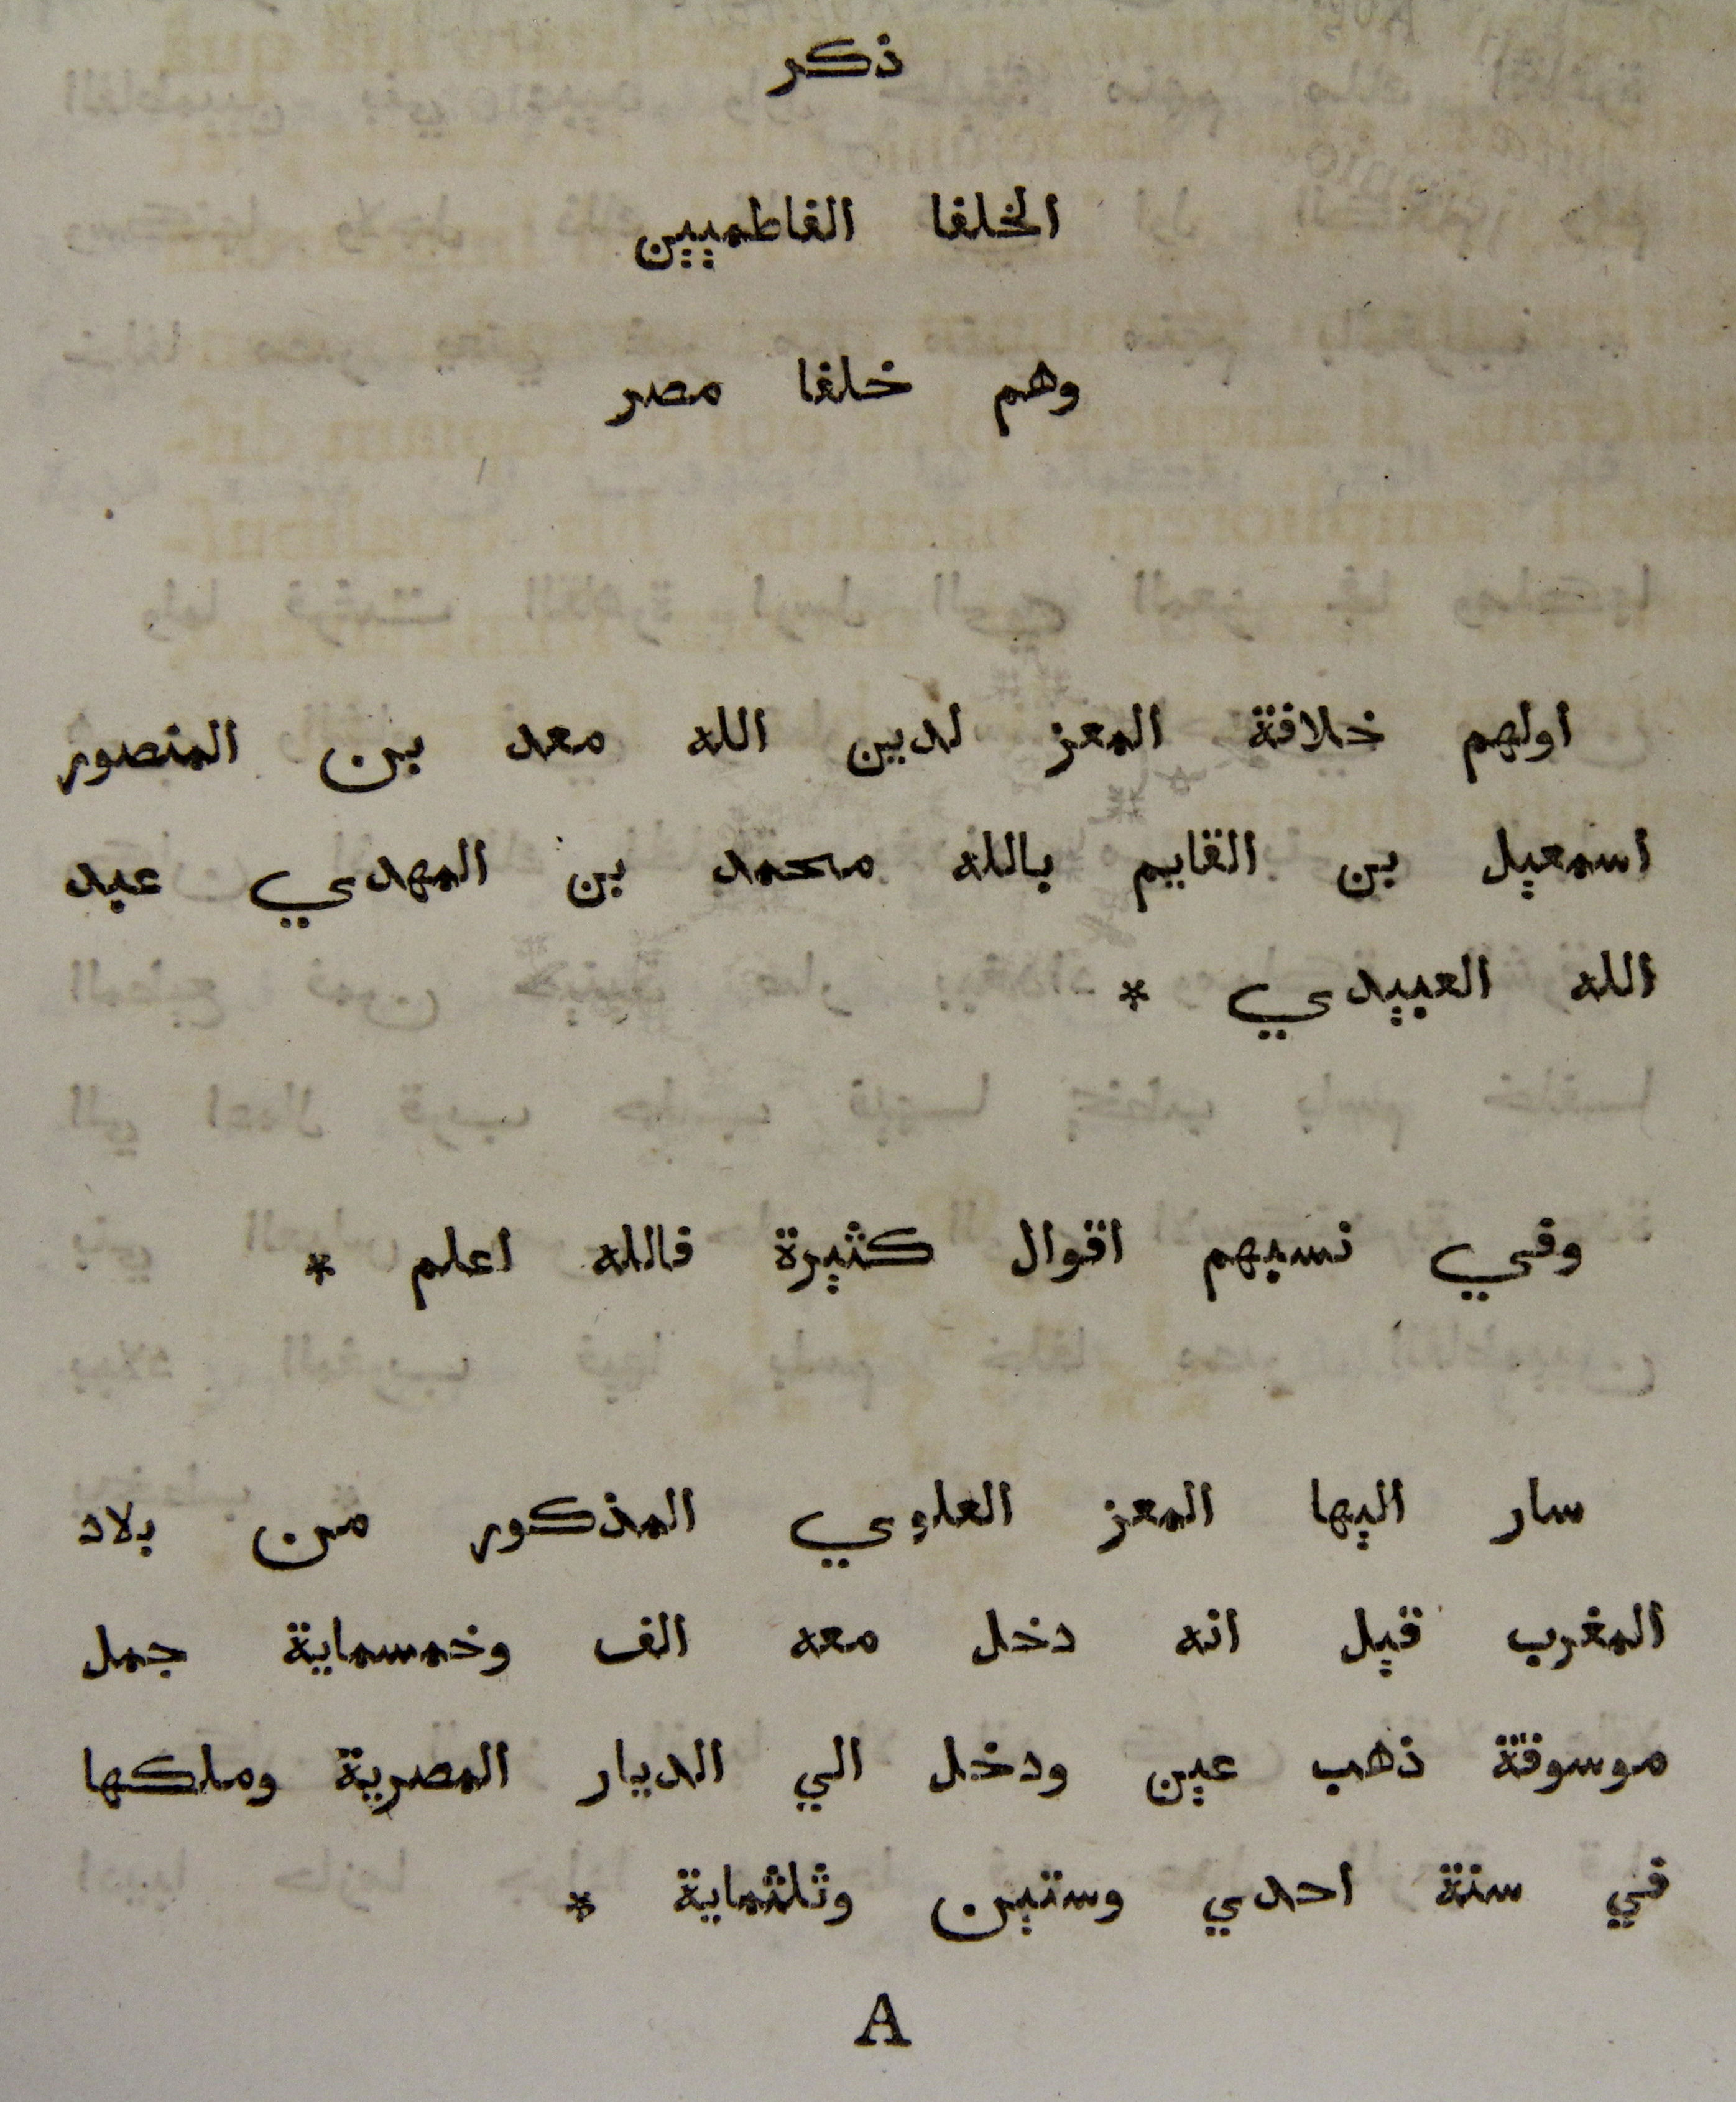 essay meaning in arabic Ielts 8 band essay quora  discipline on essay leadership pdf essay on dream and reality kannada essay about a strict teacher ideal writing essay about travelling laptop.